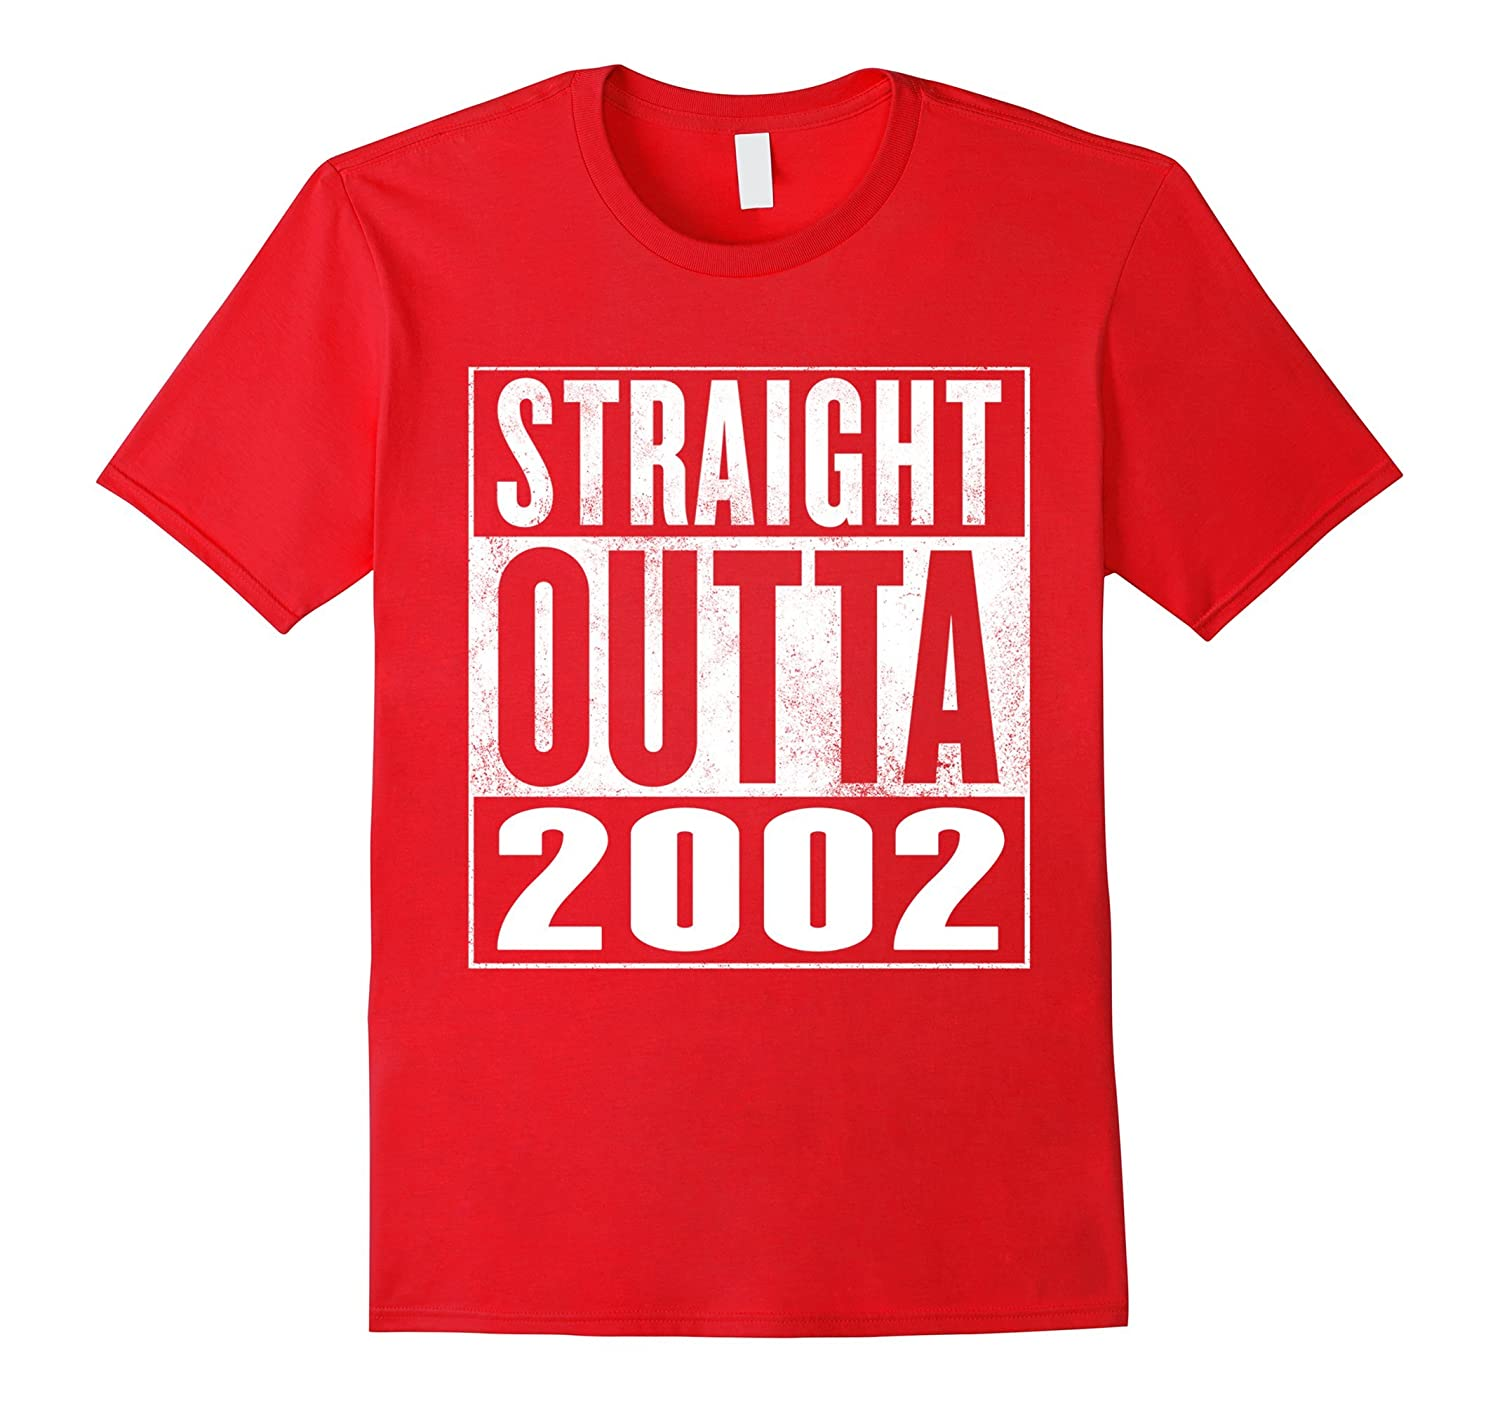 14th Birthday Gift T-Shirt - Straight Outta 2002 Shirt-FL